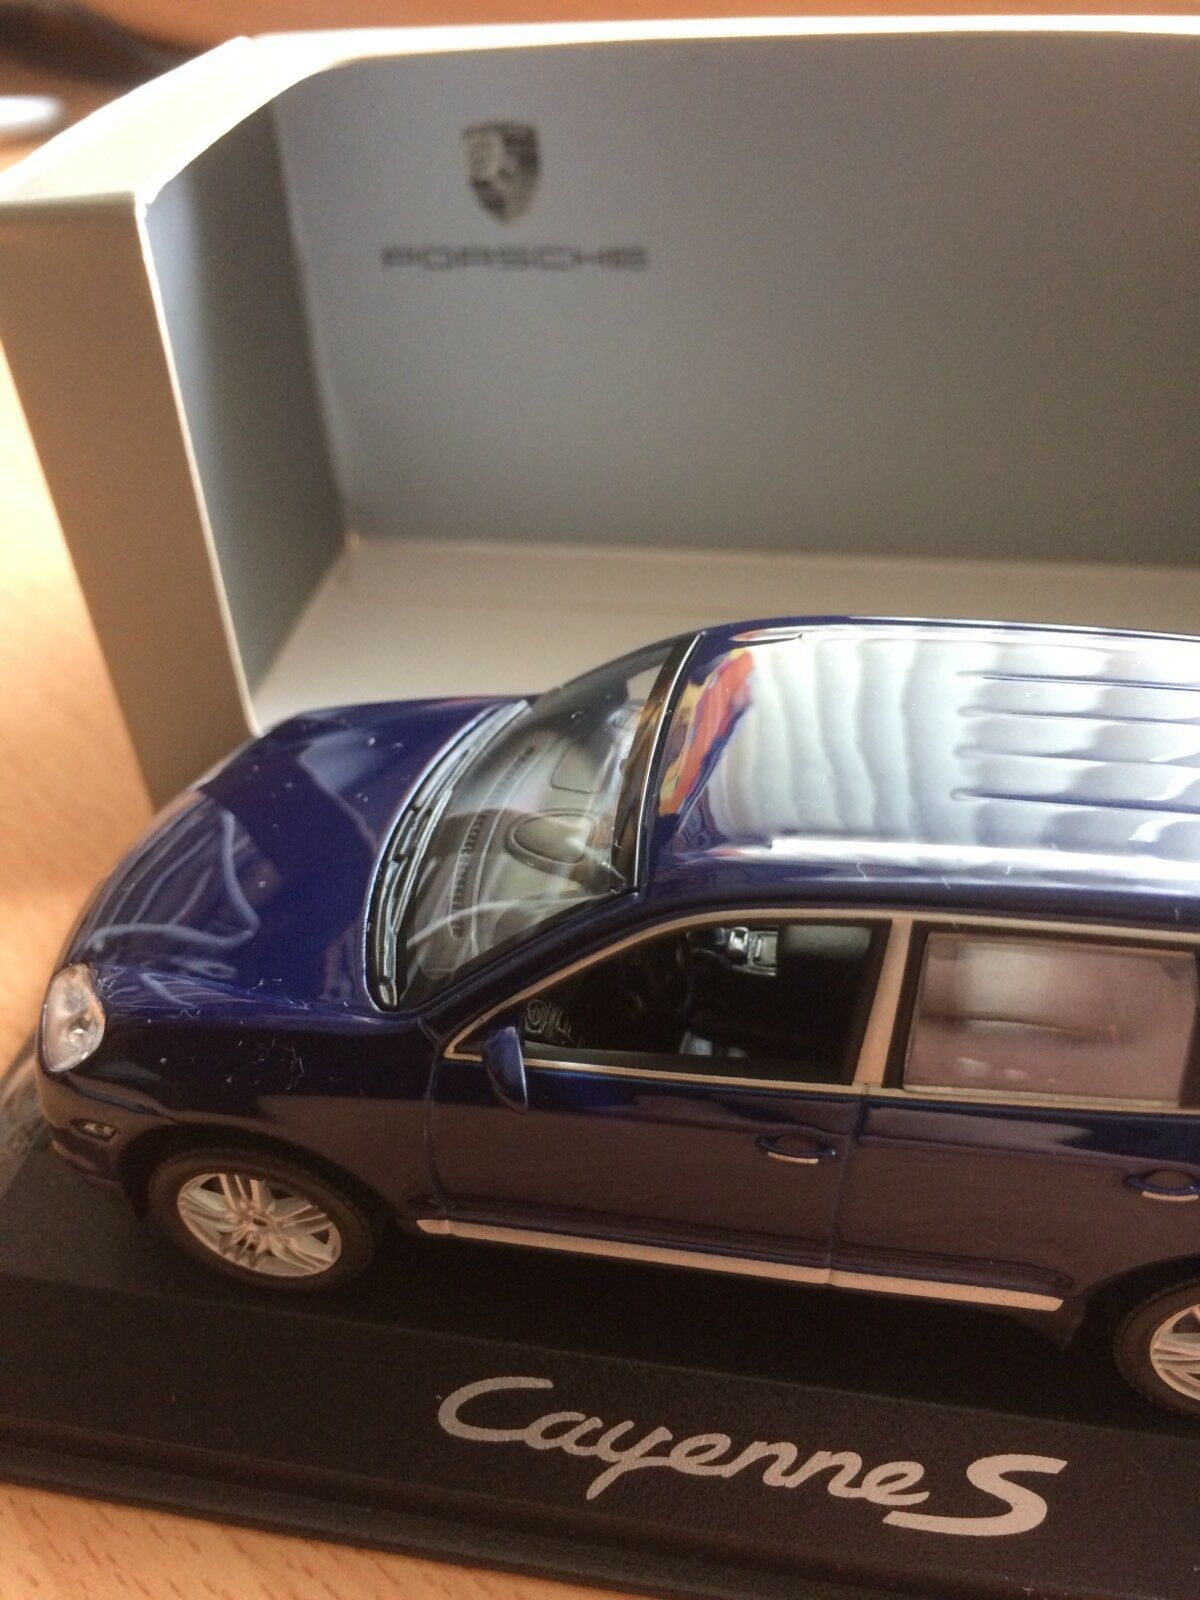 Dealer Edition Porsche Cayenne S 2007 1 43 Type 9PA Facelift bluee WAP 020 612 17